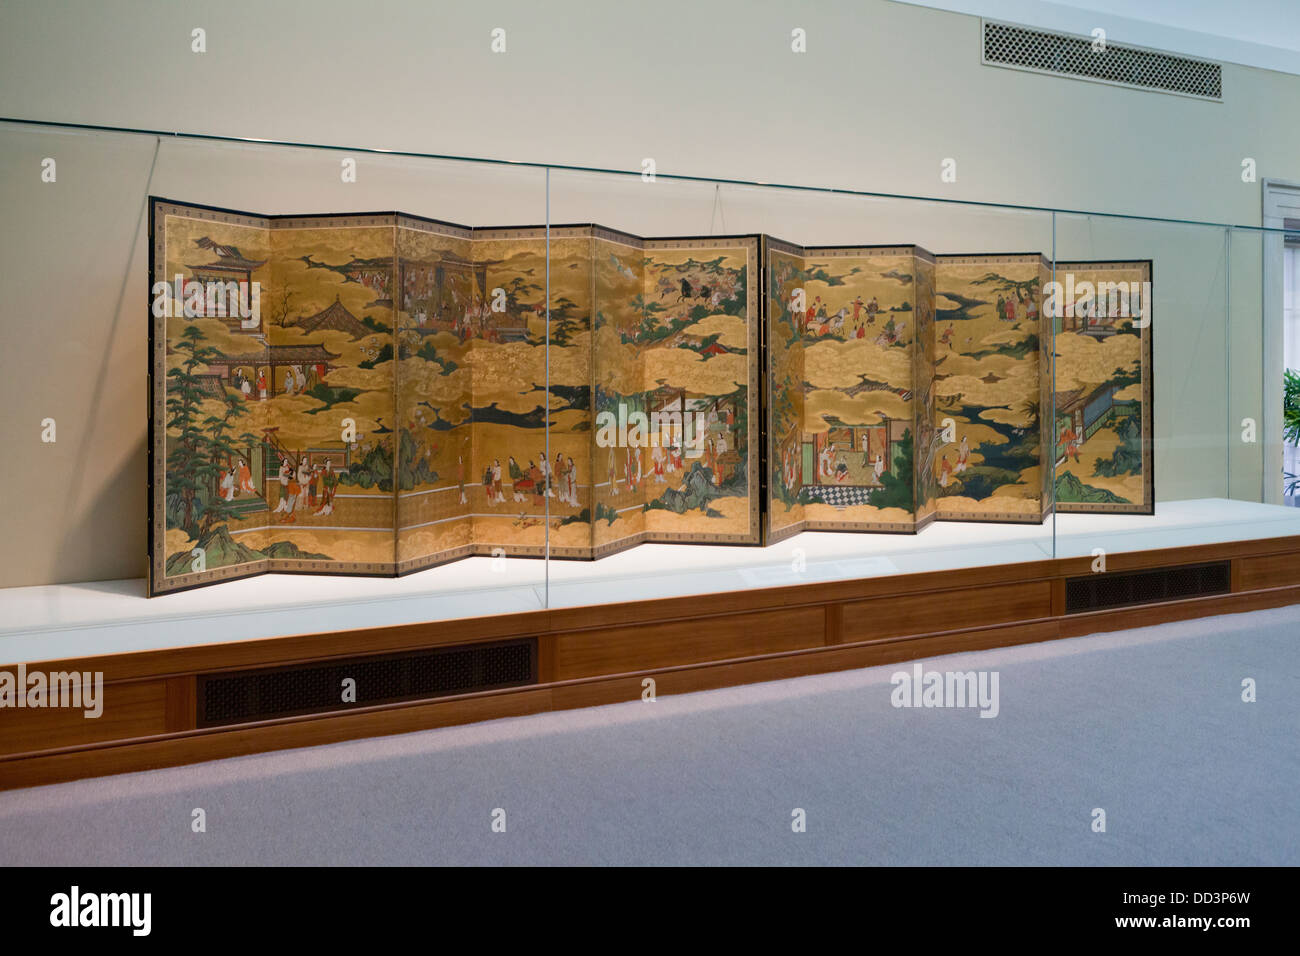 'Scenes from the Life of the Chinese Emperor Minghuang (Xuanzong) and Yang Guifei' Japanese folding screens - Stock Image